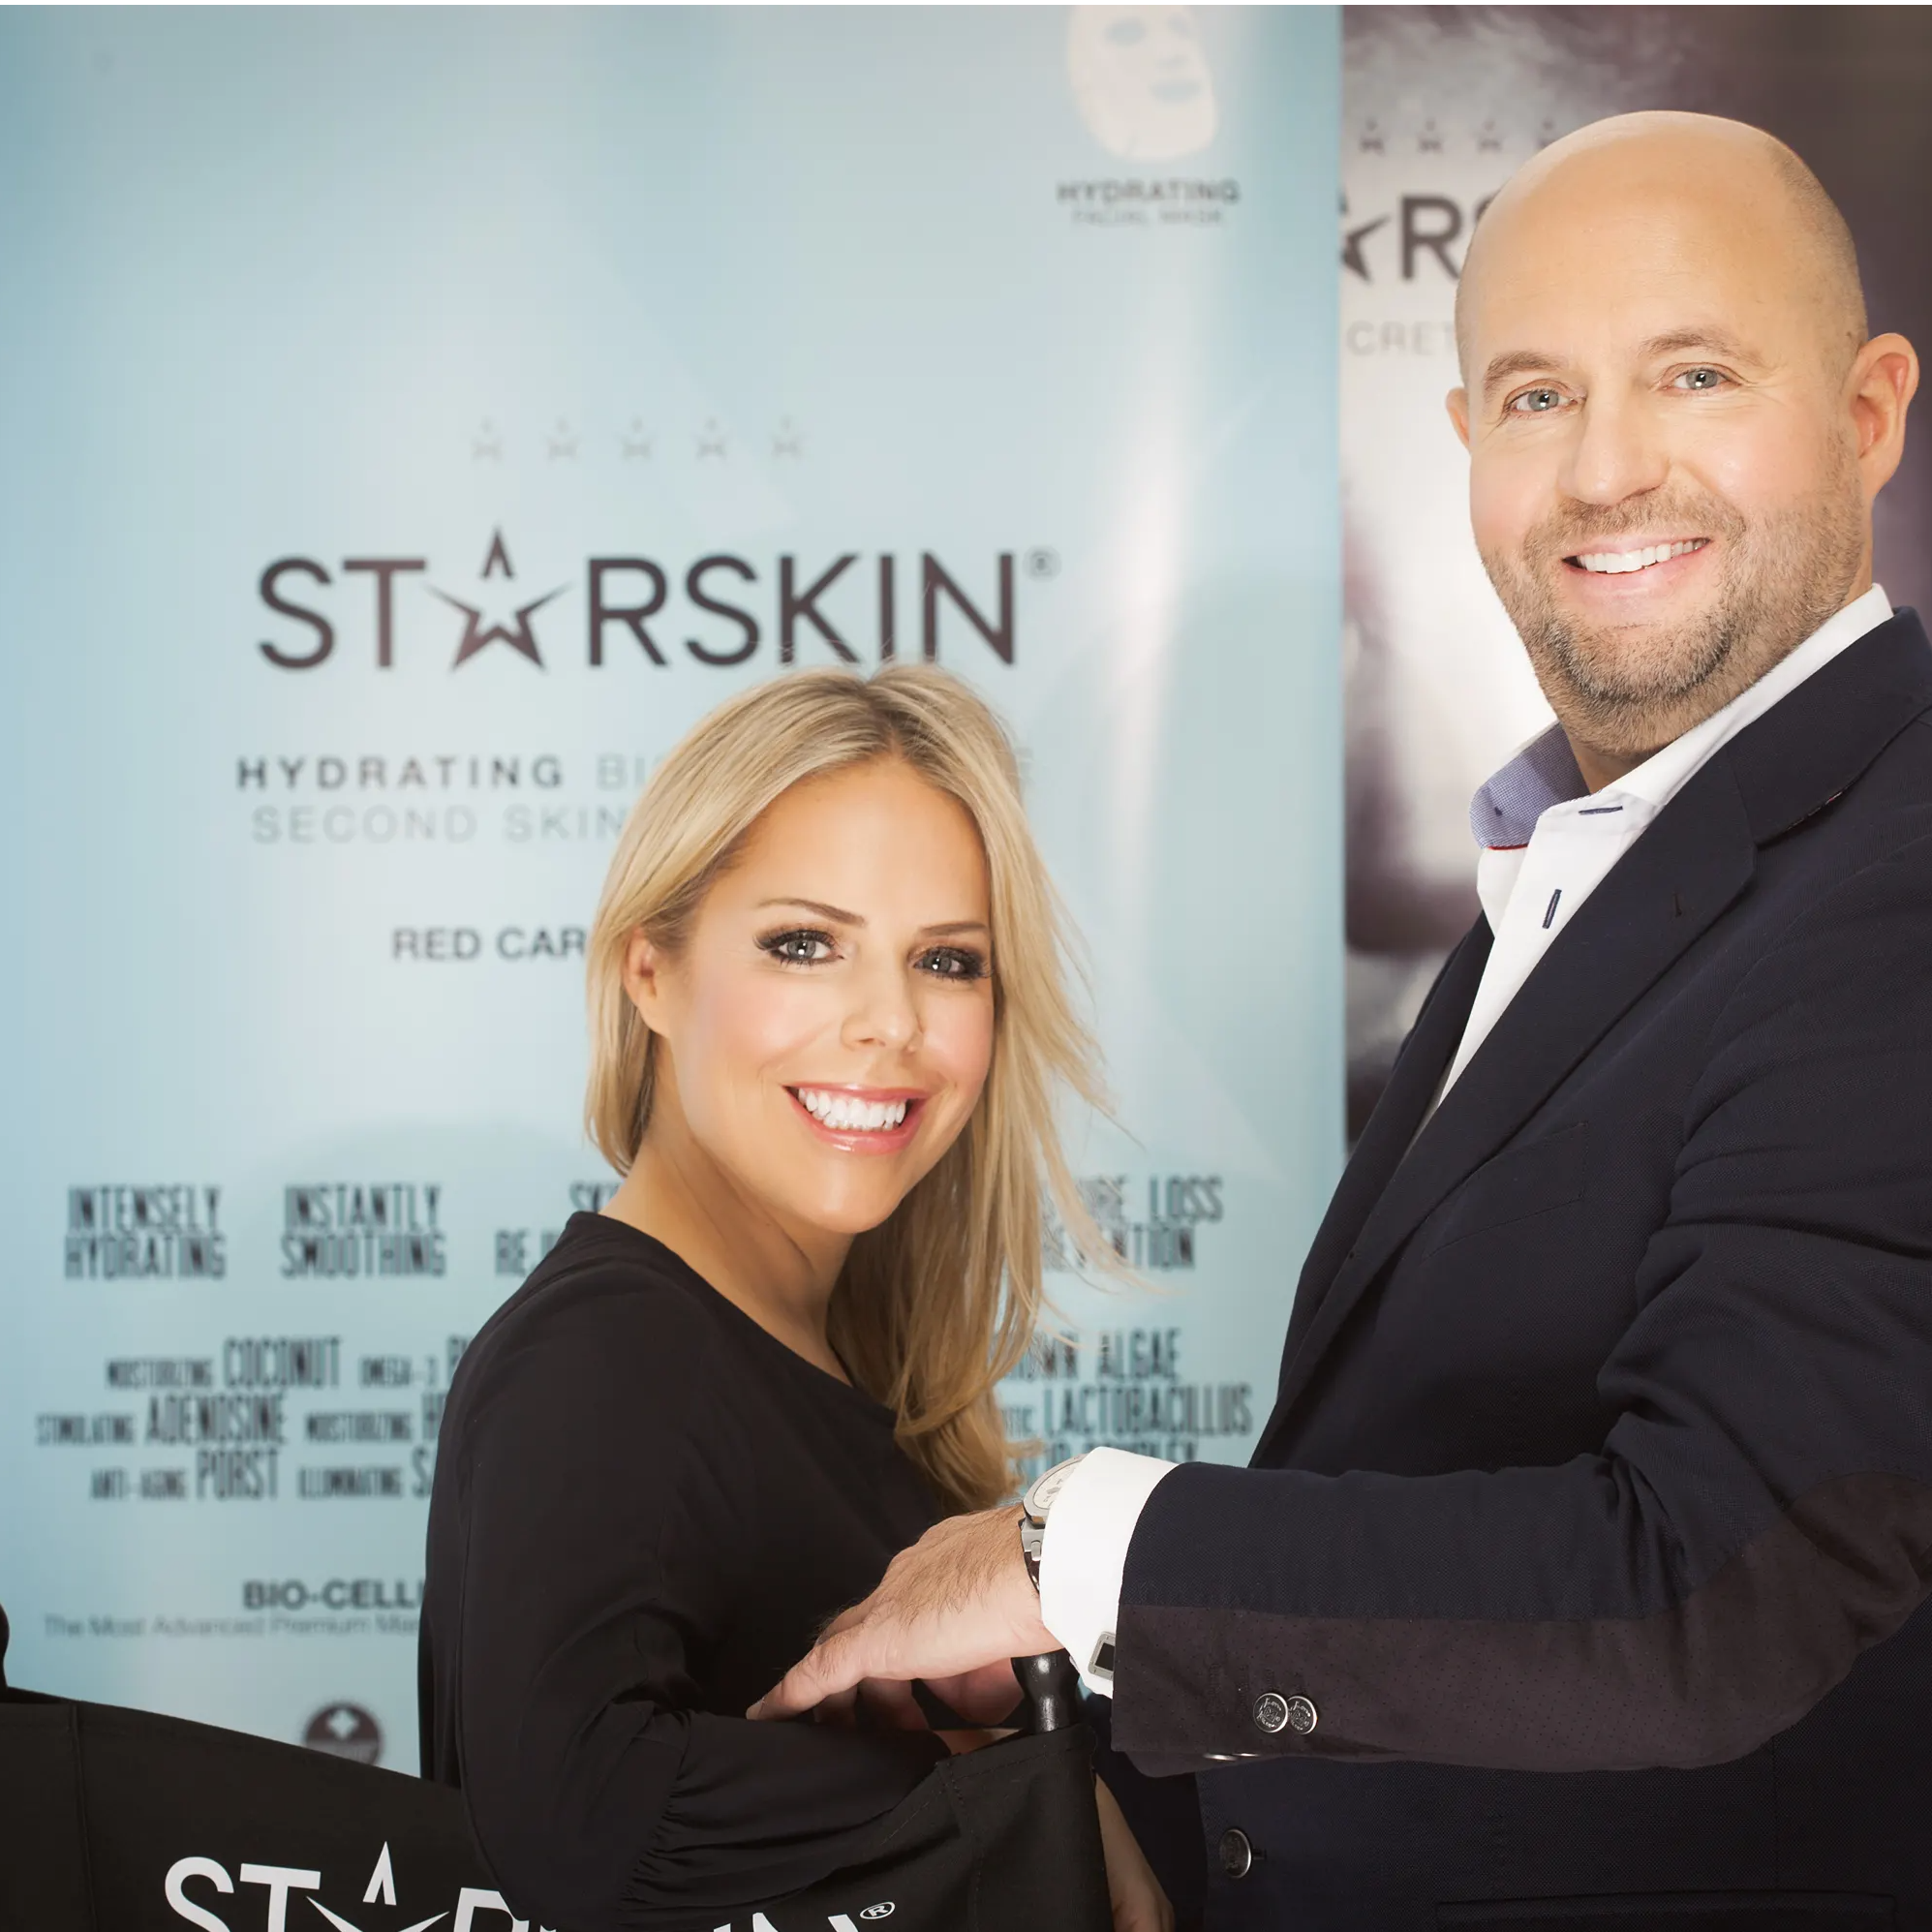 founders of starskin